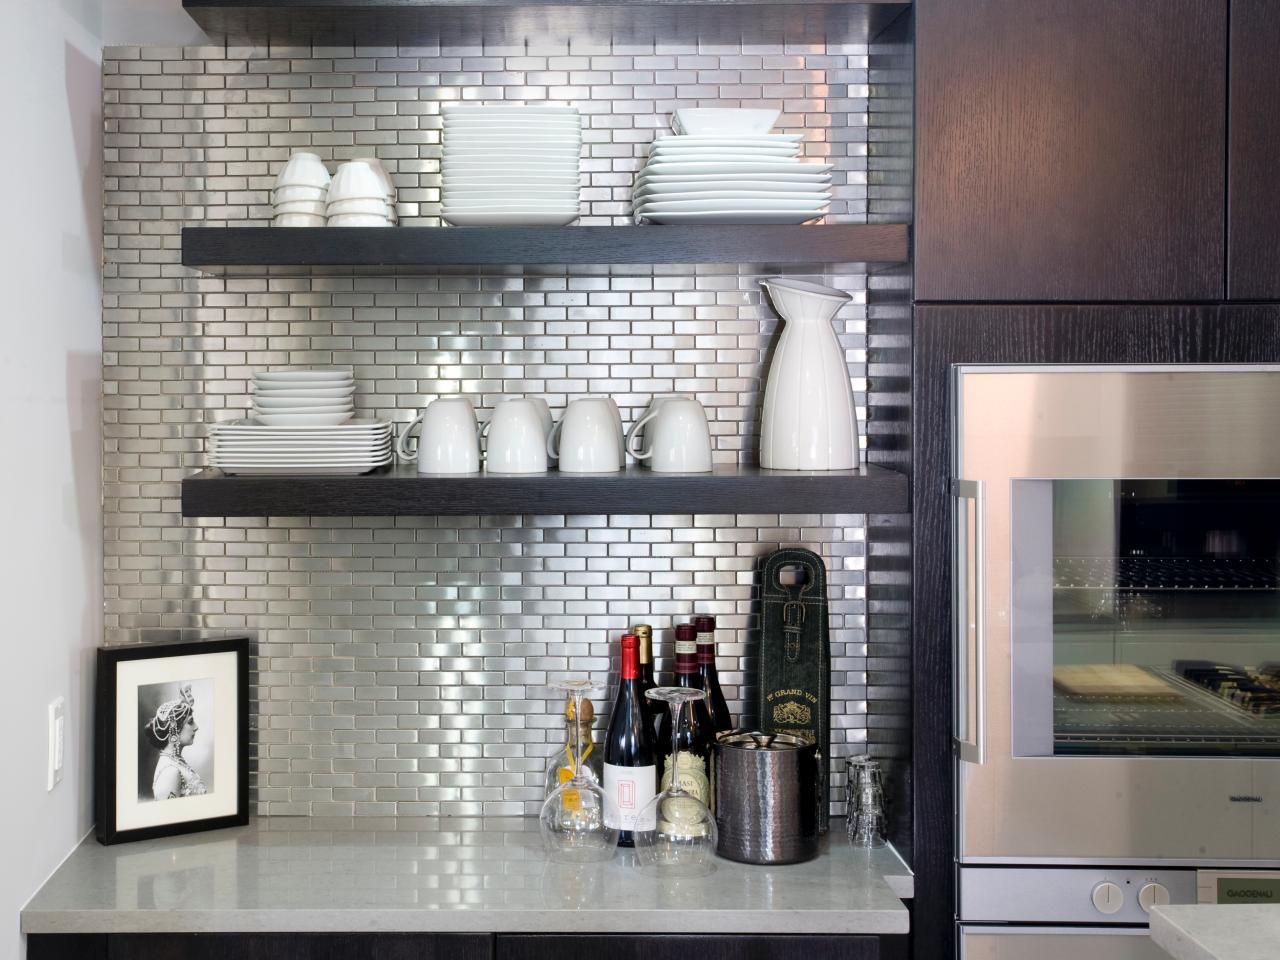 The glitzy glamour of this stainless steel backsplash belies its